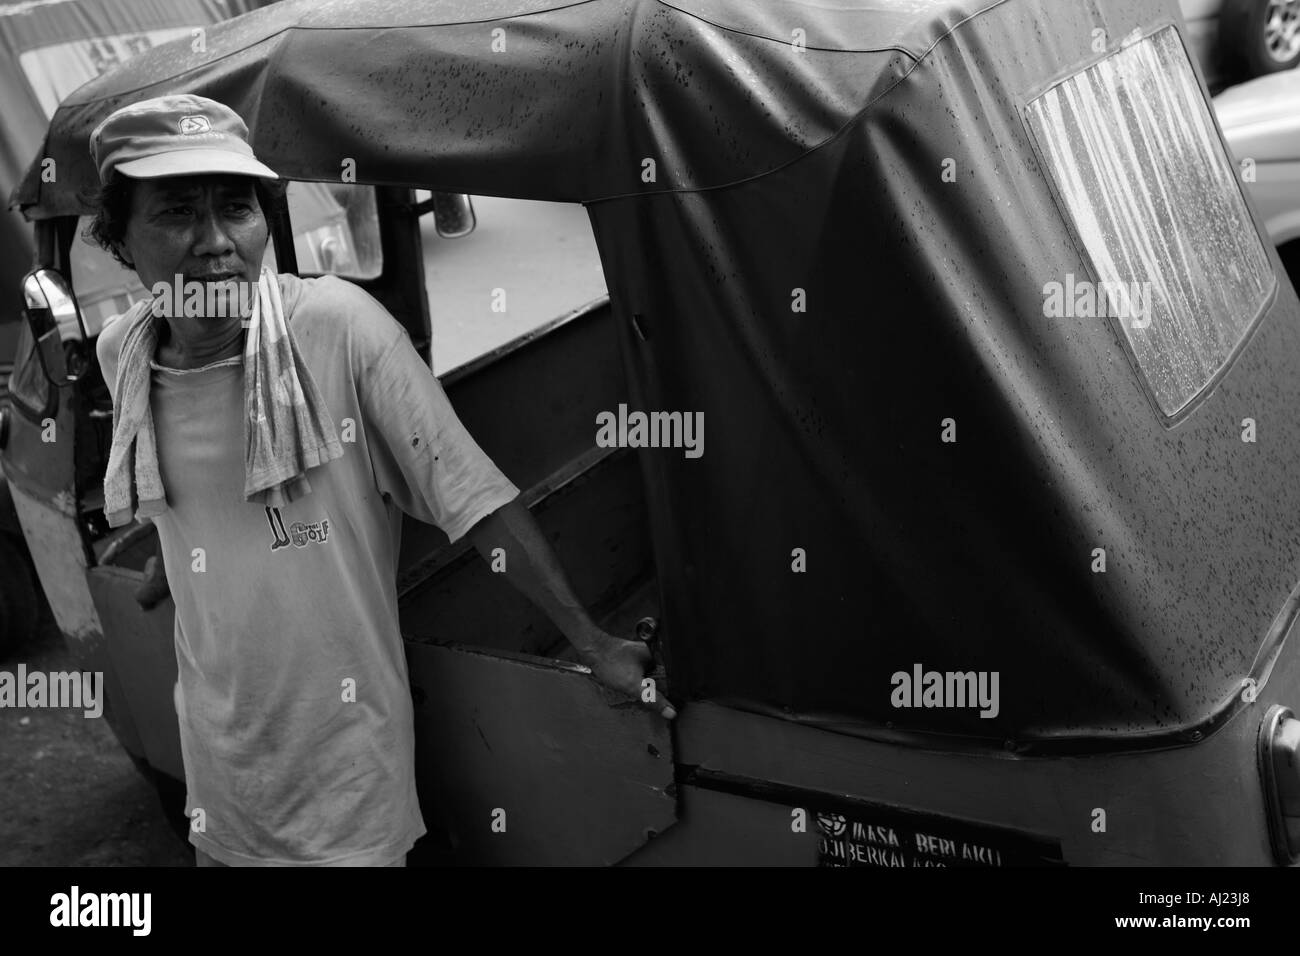 Indonesia Jakarta Portrait of motorcycle taxi drivers outside Kota Railway Station in downtown - Stock Image